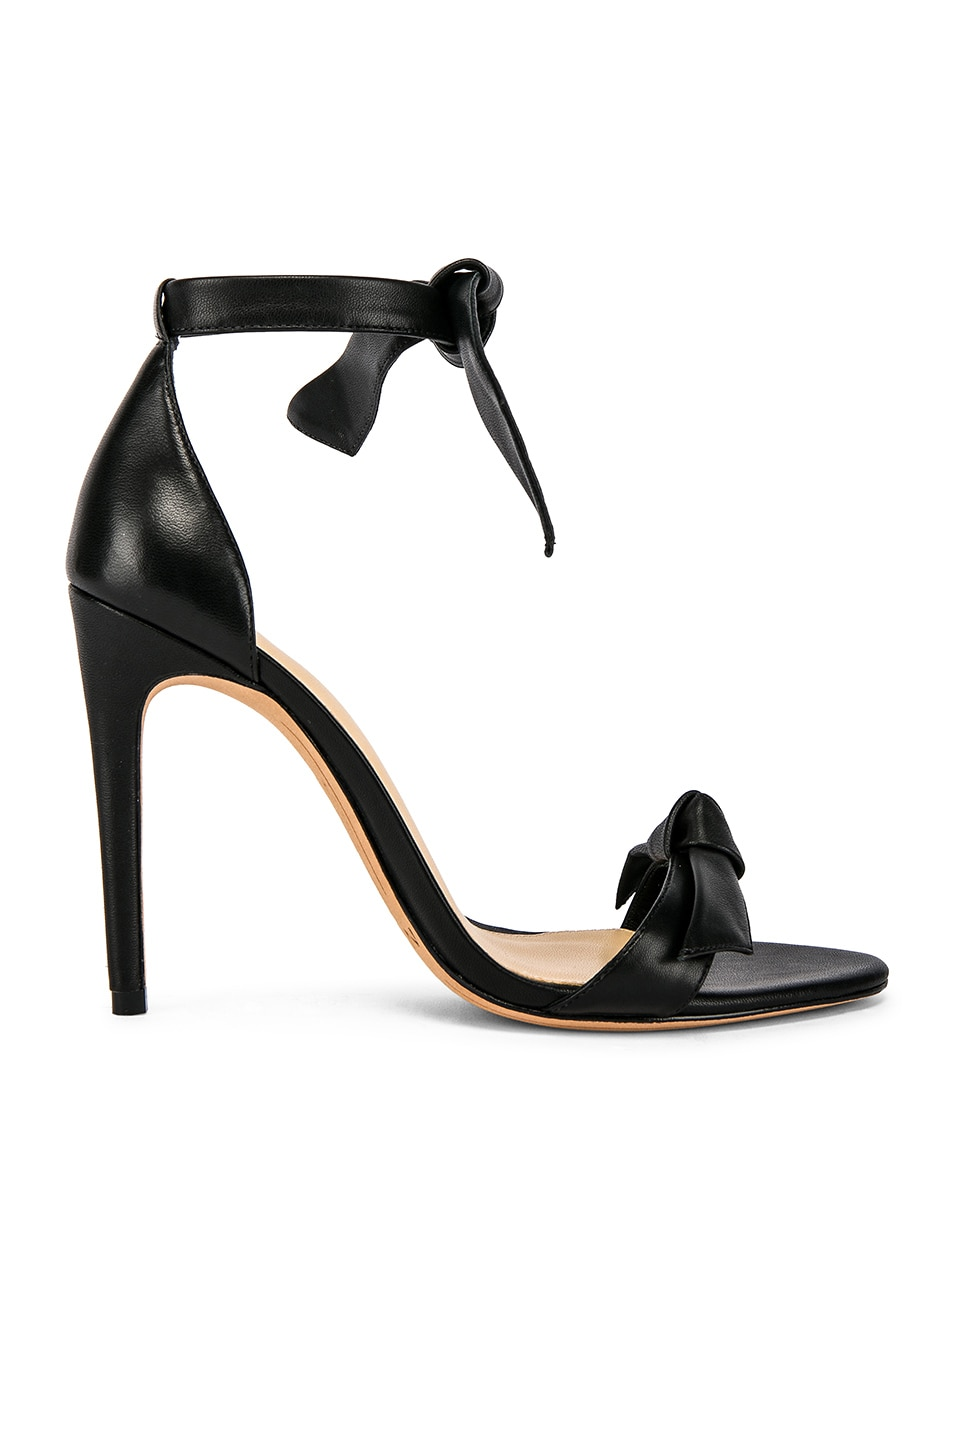 Alexandre Birman Clarita Sandal in Black